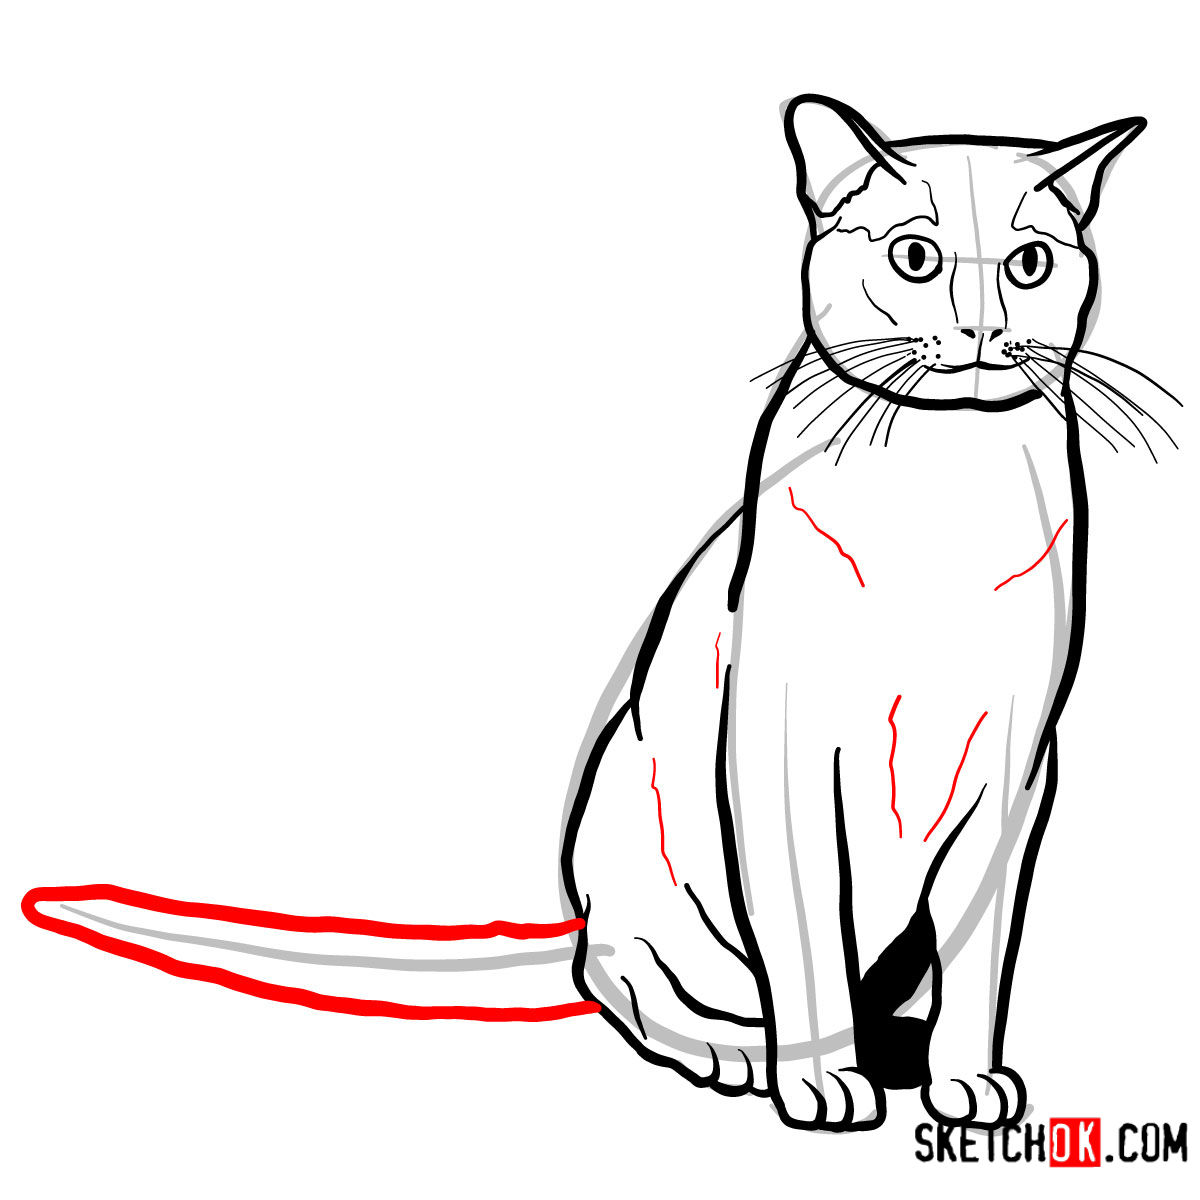 How to draw the Burmese cat - step 10